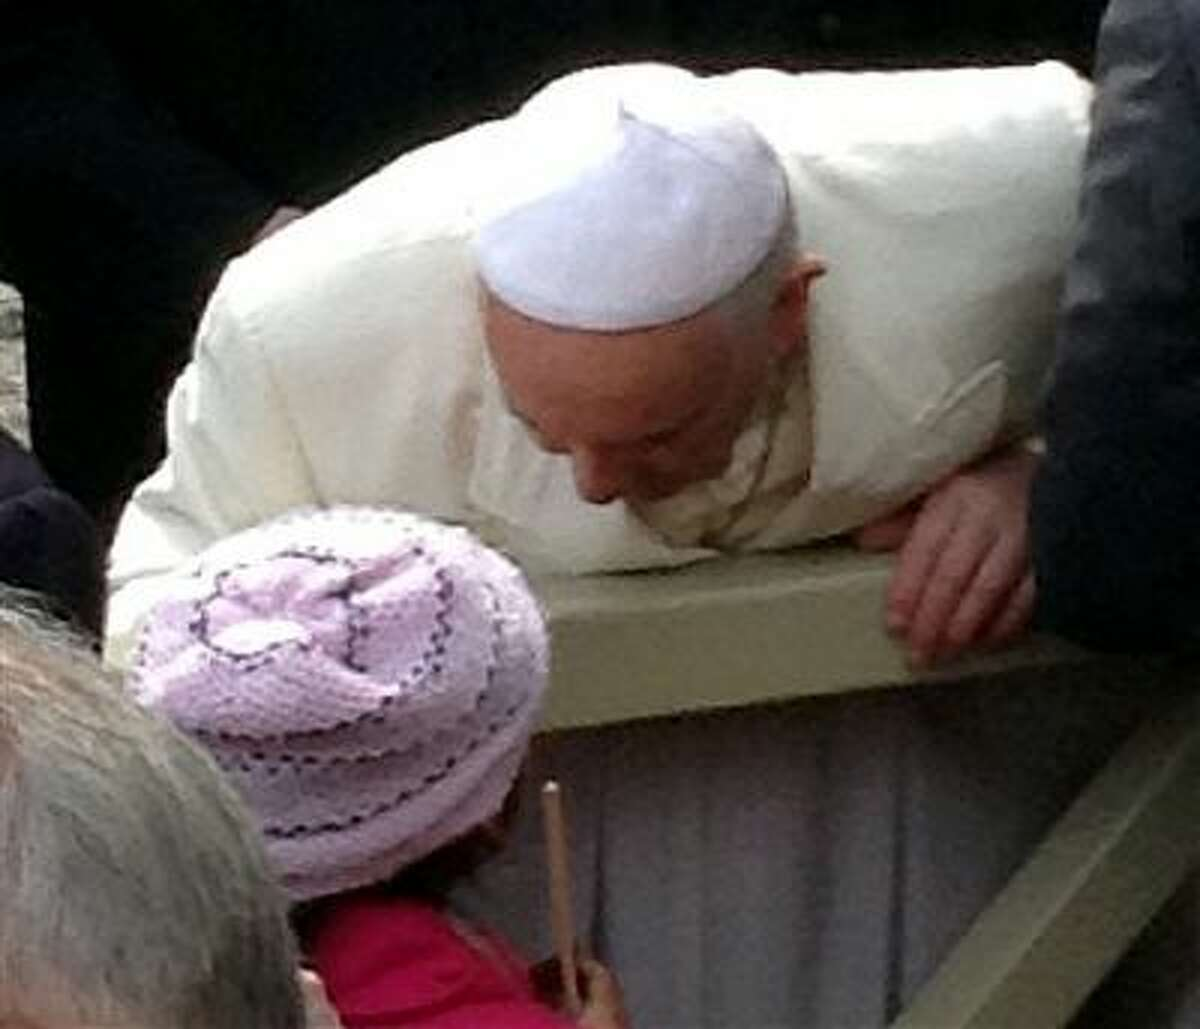 In this March 26, 2014, photo provided by Catholic Coalition of Immigrant Rights, Pope Francis leans down to talk to 10-year-old Jersey Vargas, who traveled to the Vatican from Los Angeles to plead with him to help spare her father from deportation, during a public audience at St. Peter's Square in Vatican City. Her father, Mario Vargas, in the United States illegally, had been in federal custody and faced possible deportation. After speaking with Francis, Mario Vargas was released on bond from immigration detention, Immigration and Customs Enforcement said Friday, March 28, 2014. Jersey Vargas was part of a California delegation that sought to encourage the Vatican to prod President Obama on immigration reform. (AP Photo/Catholic Coalition of Immigrant Rights)